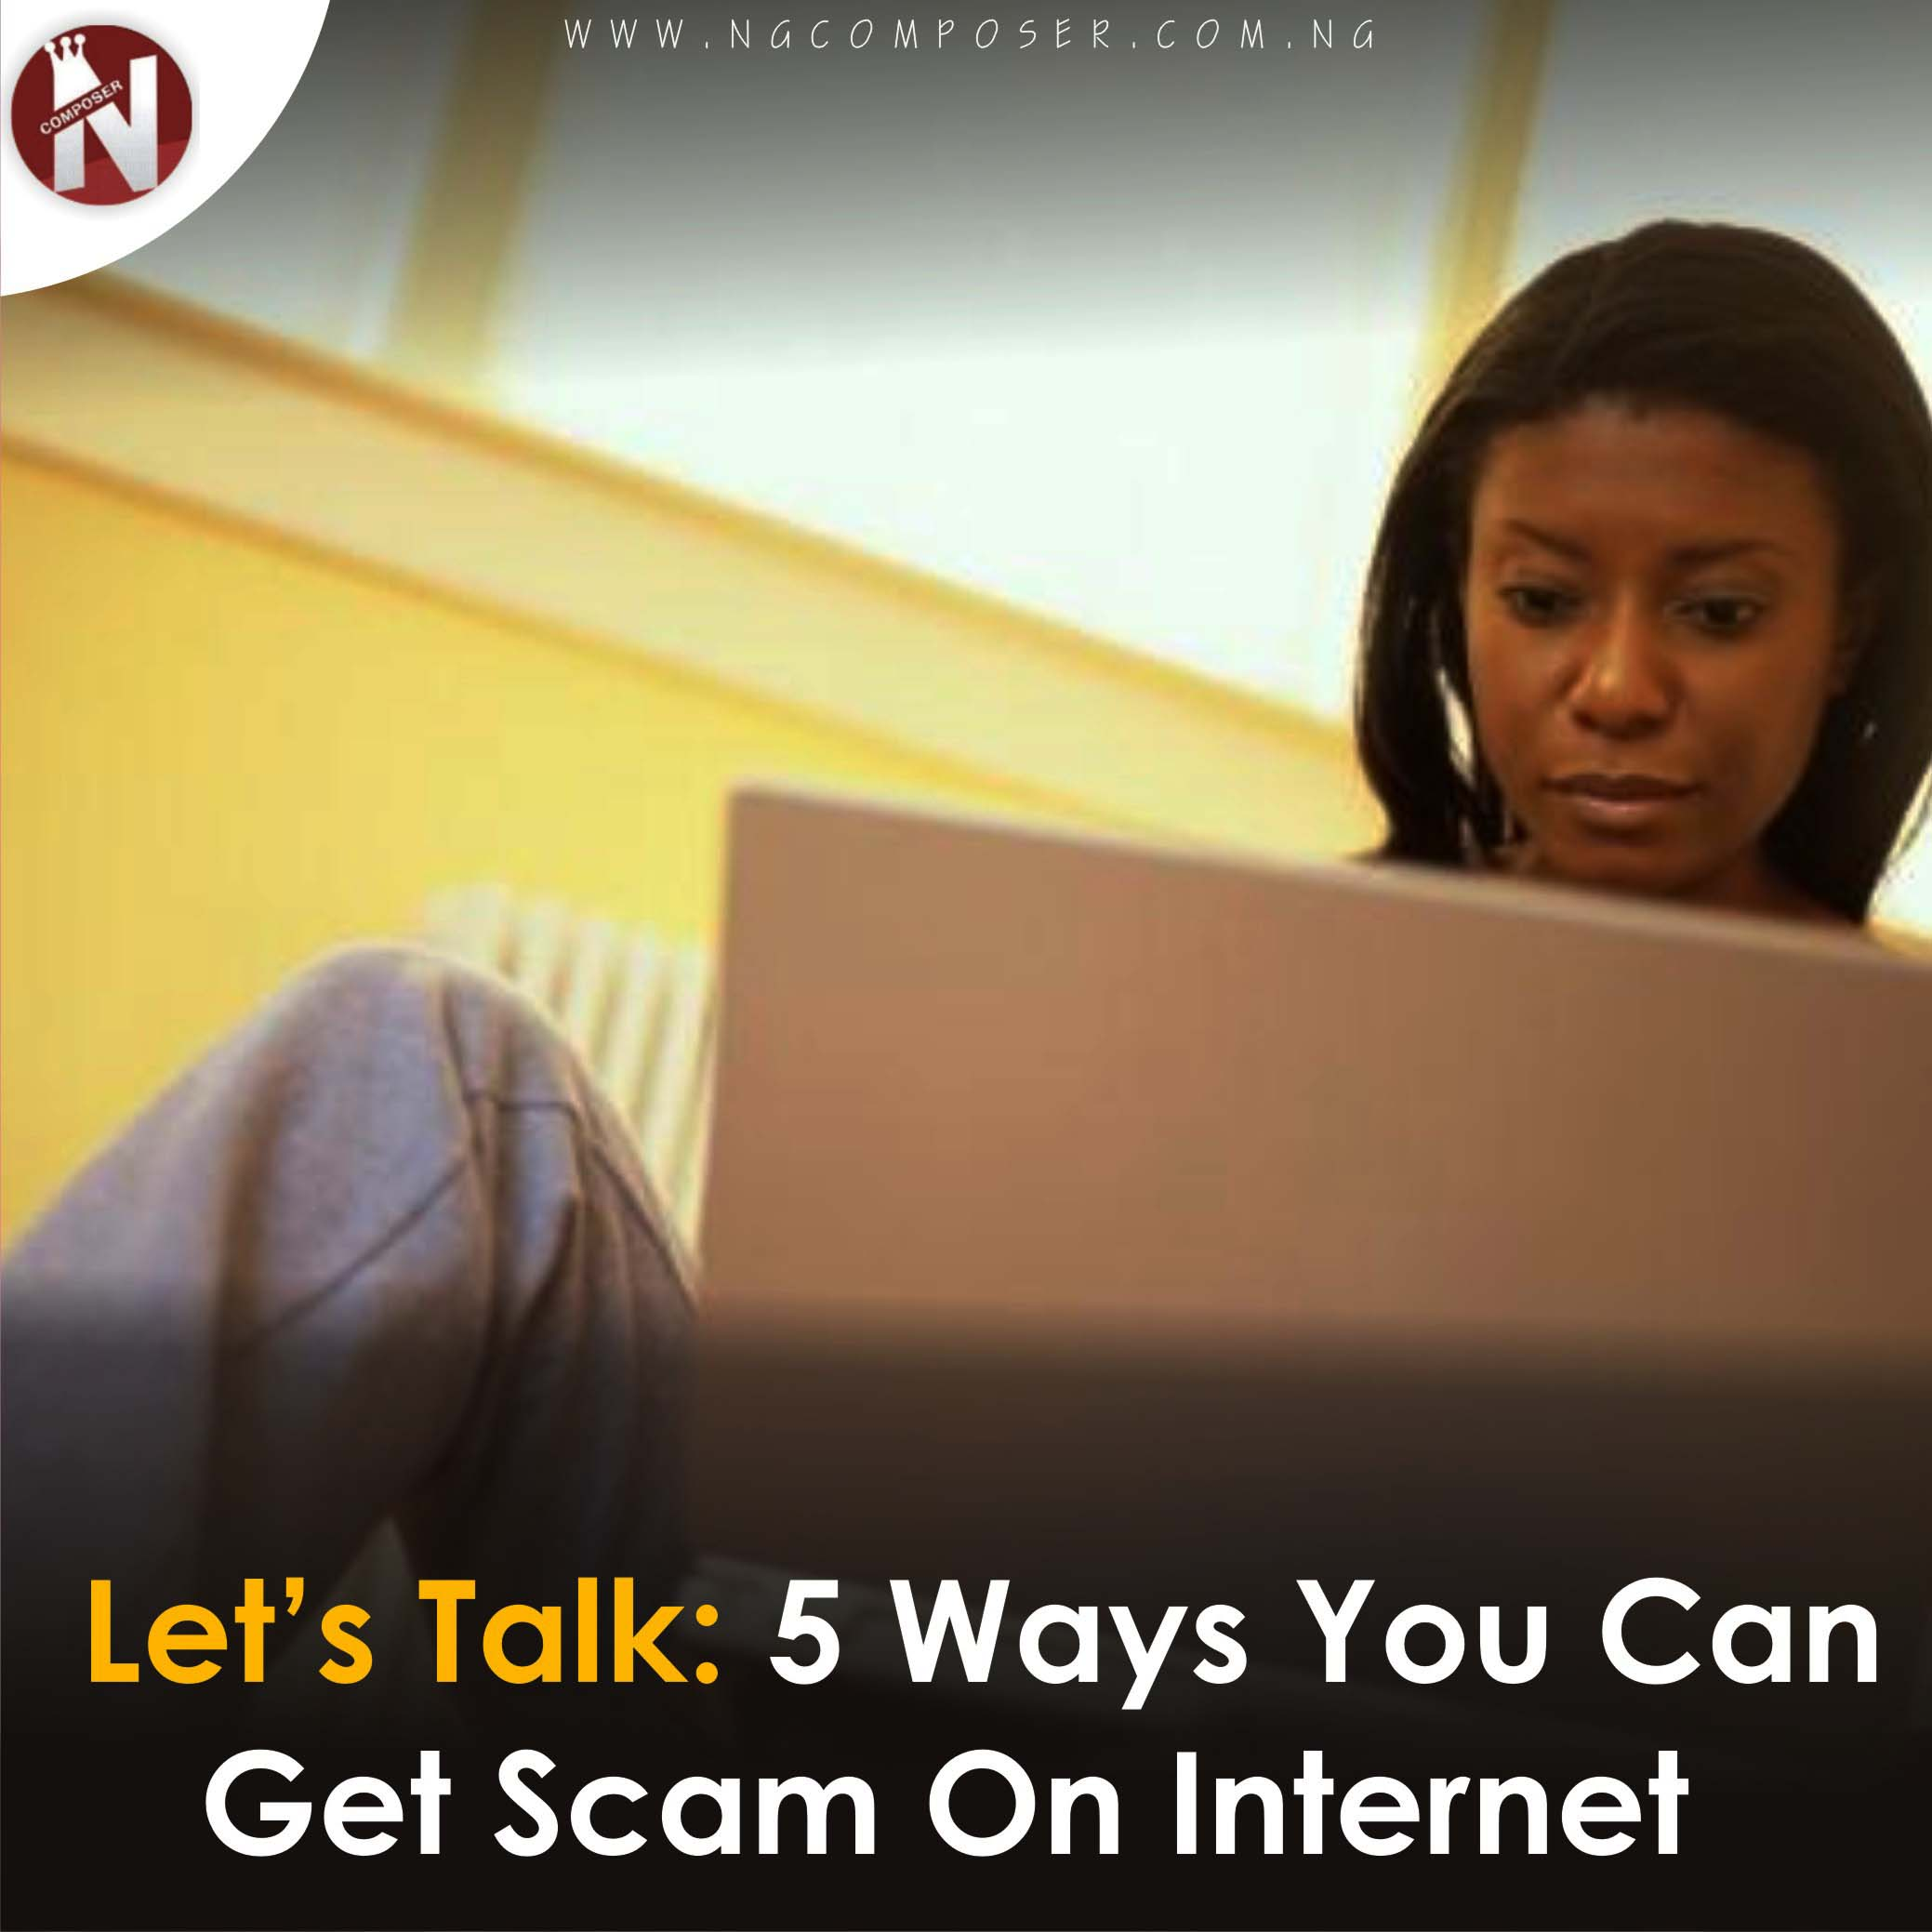 5 Ways You Can Get Scam On Internet